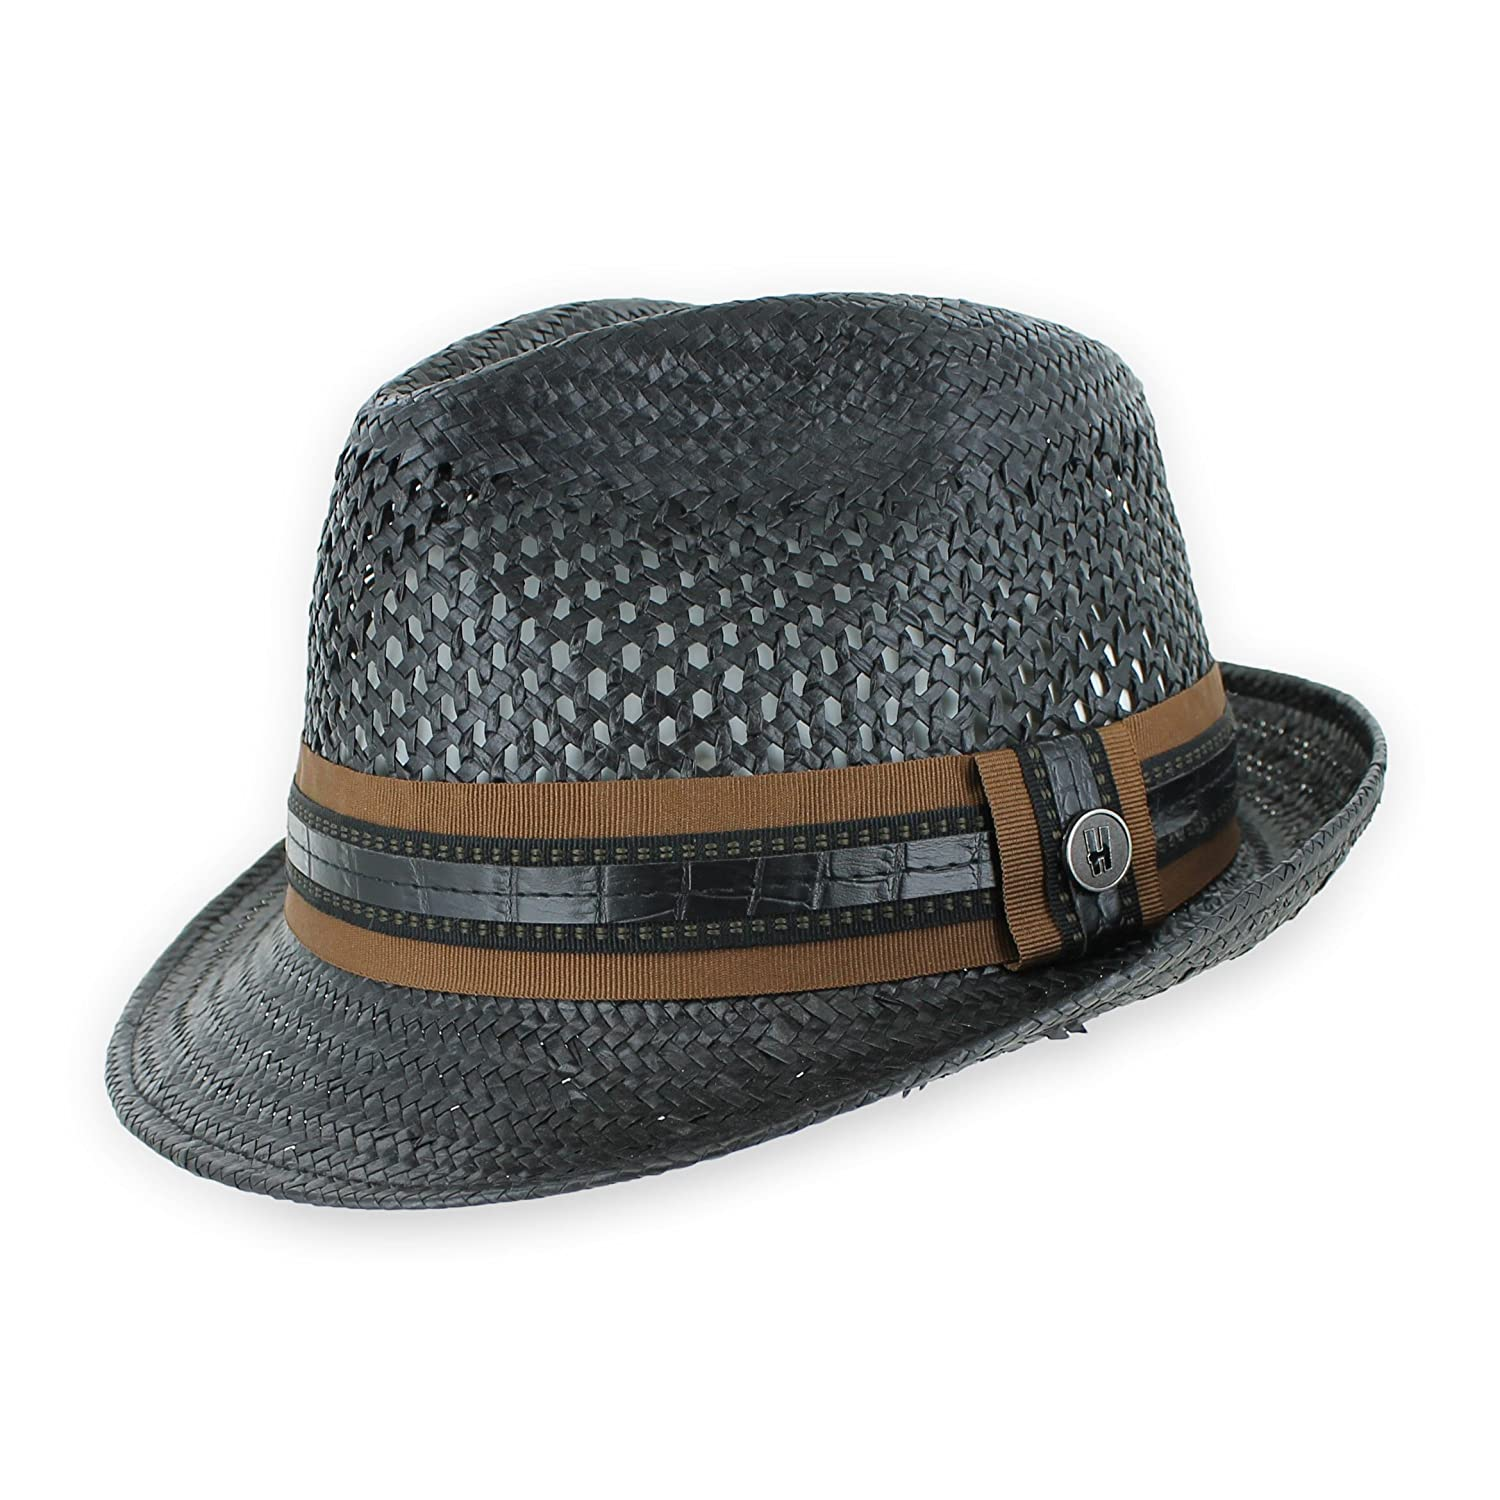 7d5bd9d0 Men Women Summer Woven Straw Trilby Fedora Hat in Ivory Tan Black at Amazon  Men's Clothing store: